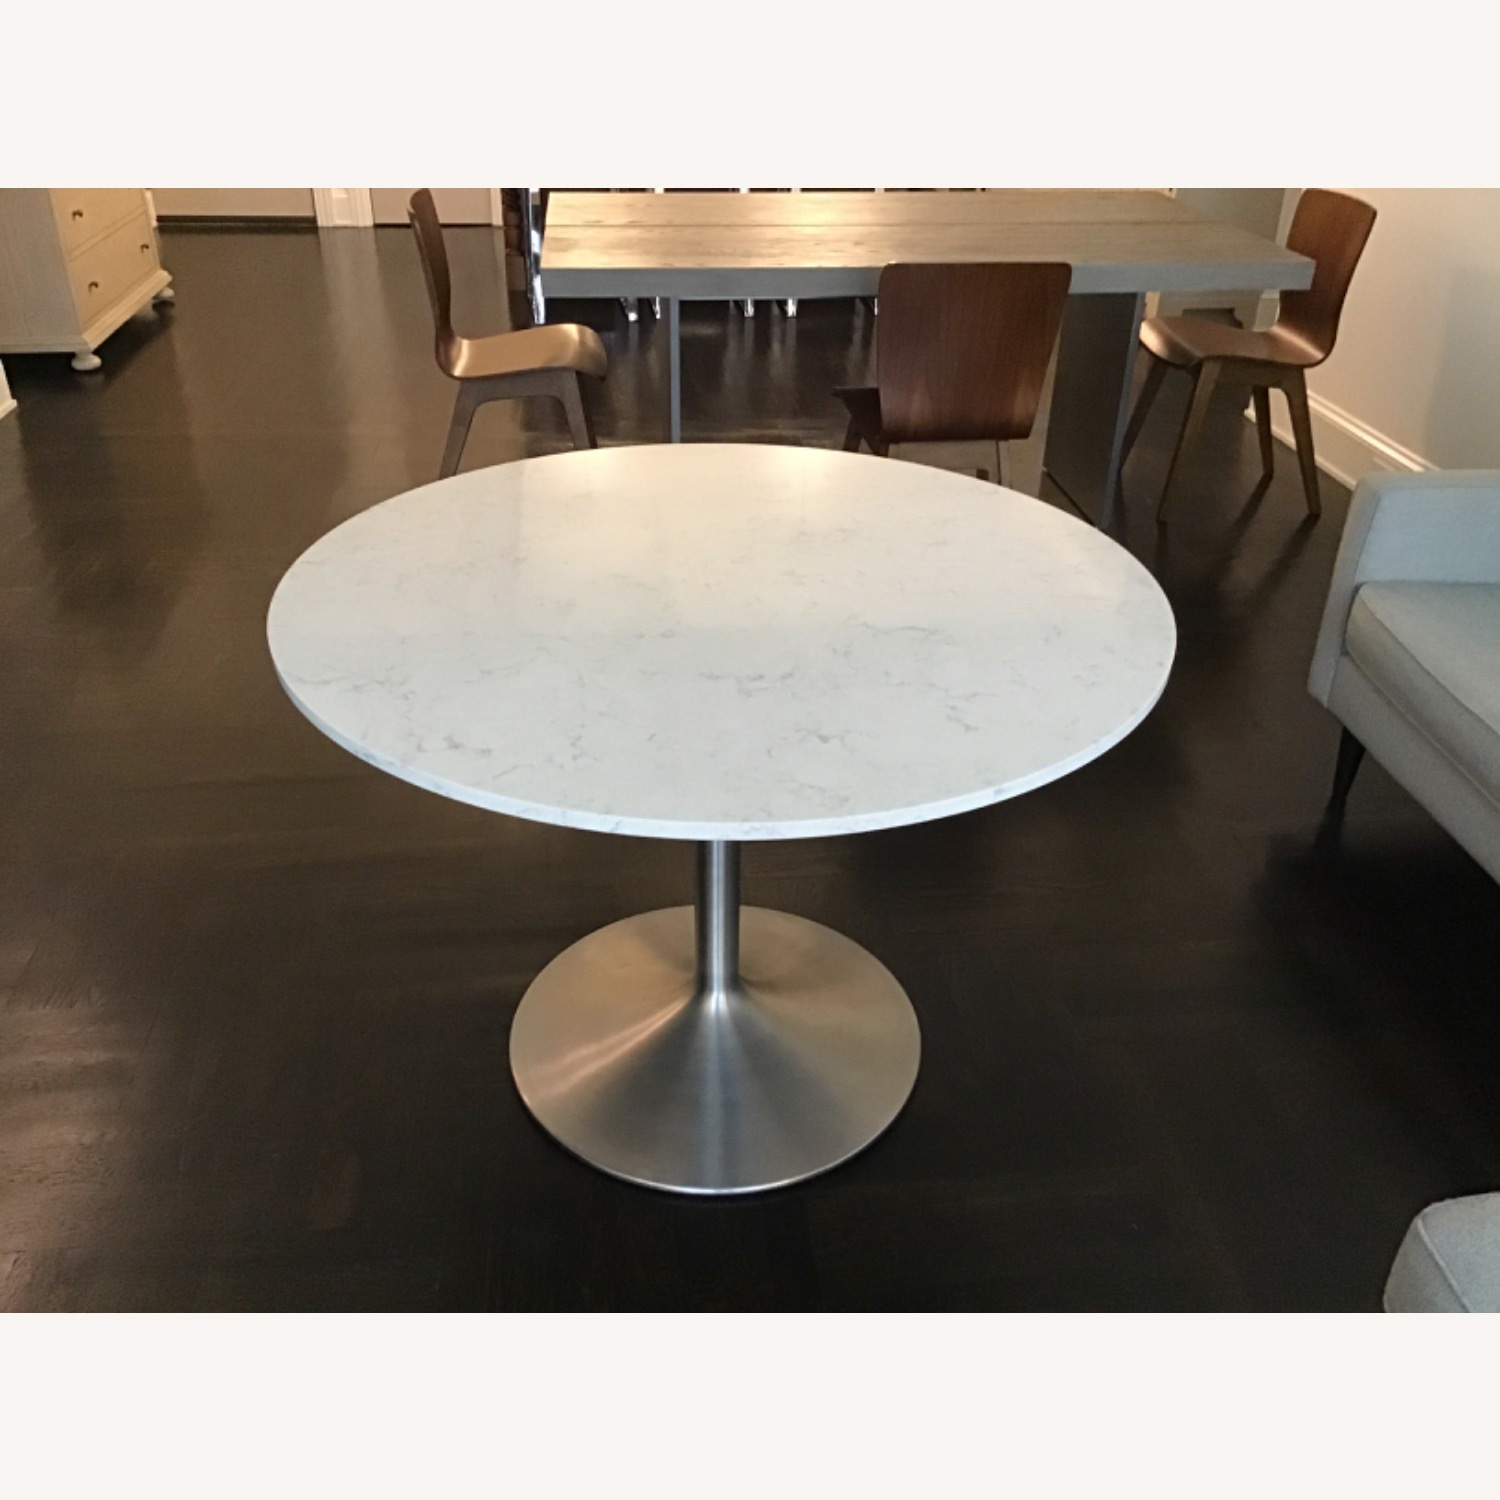 Room & Board Aria Marble Round Dining Table - image-1